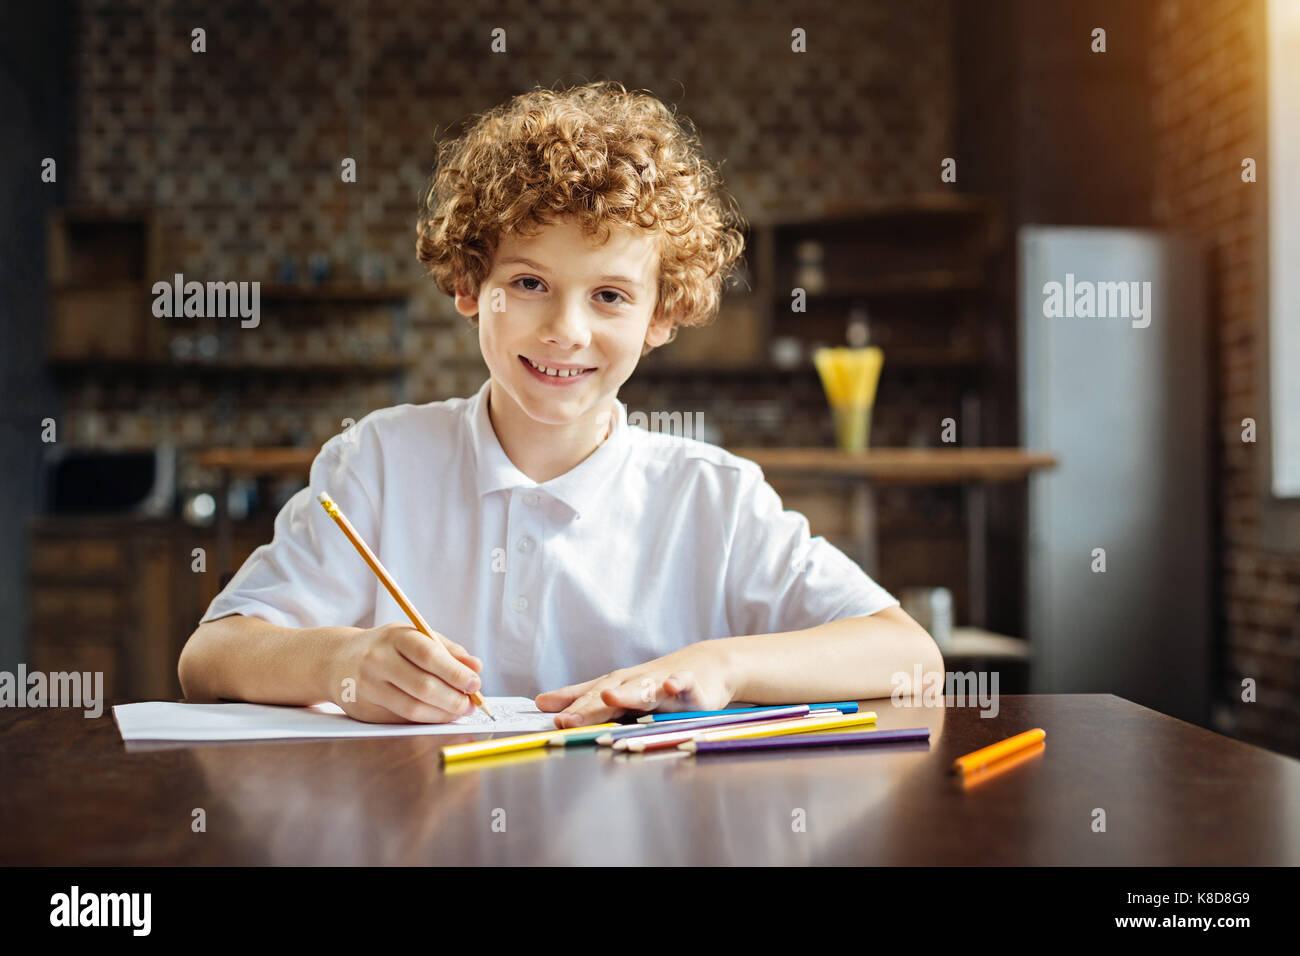 Curly haired preteen boy looking into camera while drawing - Stock Image